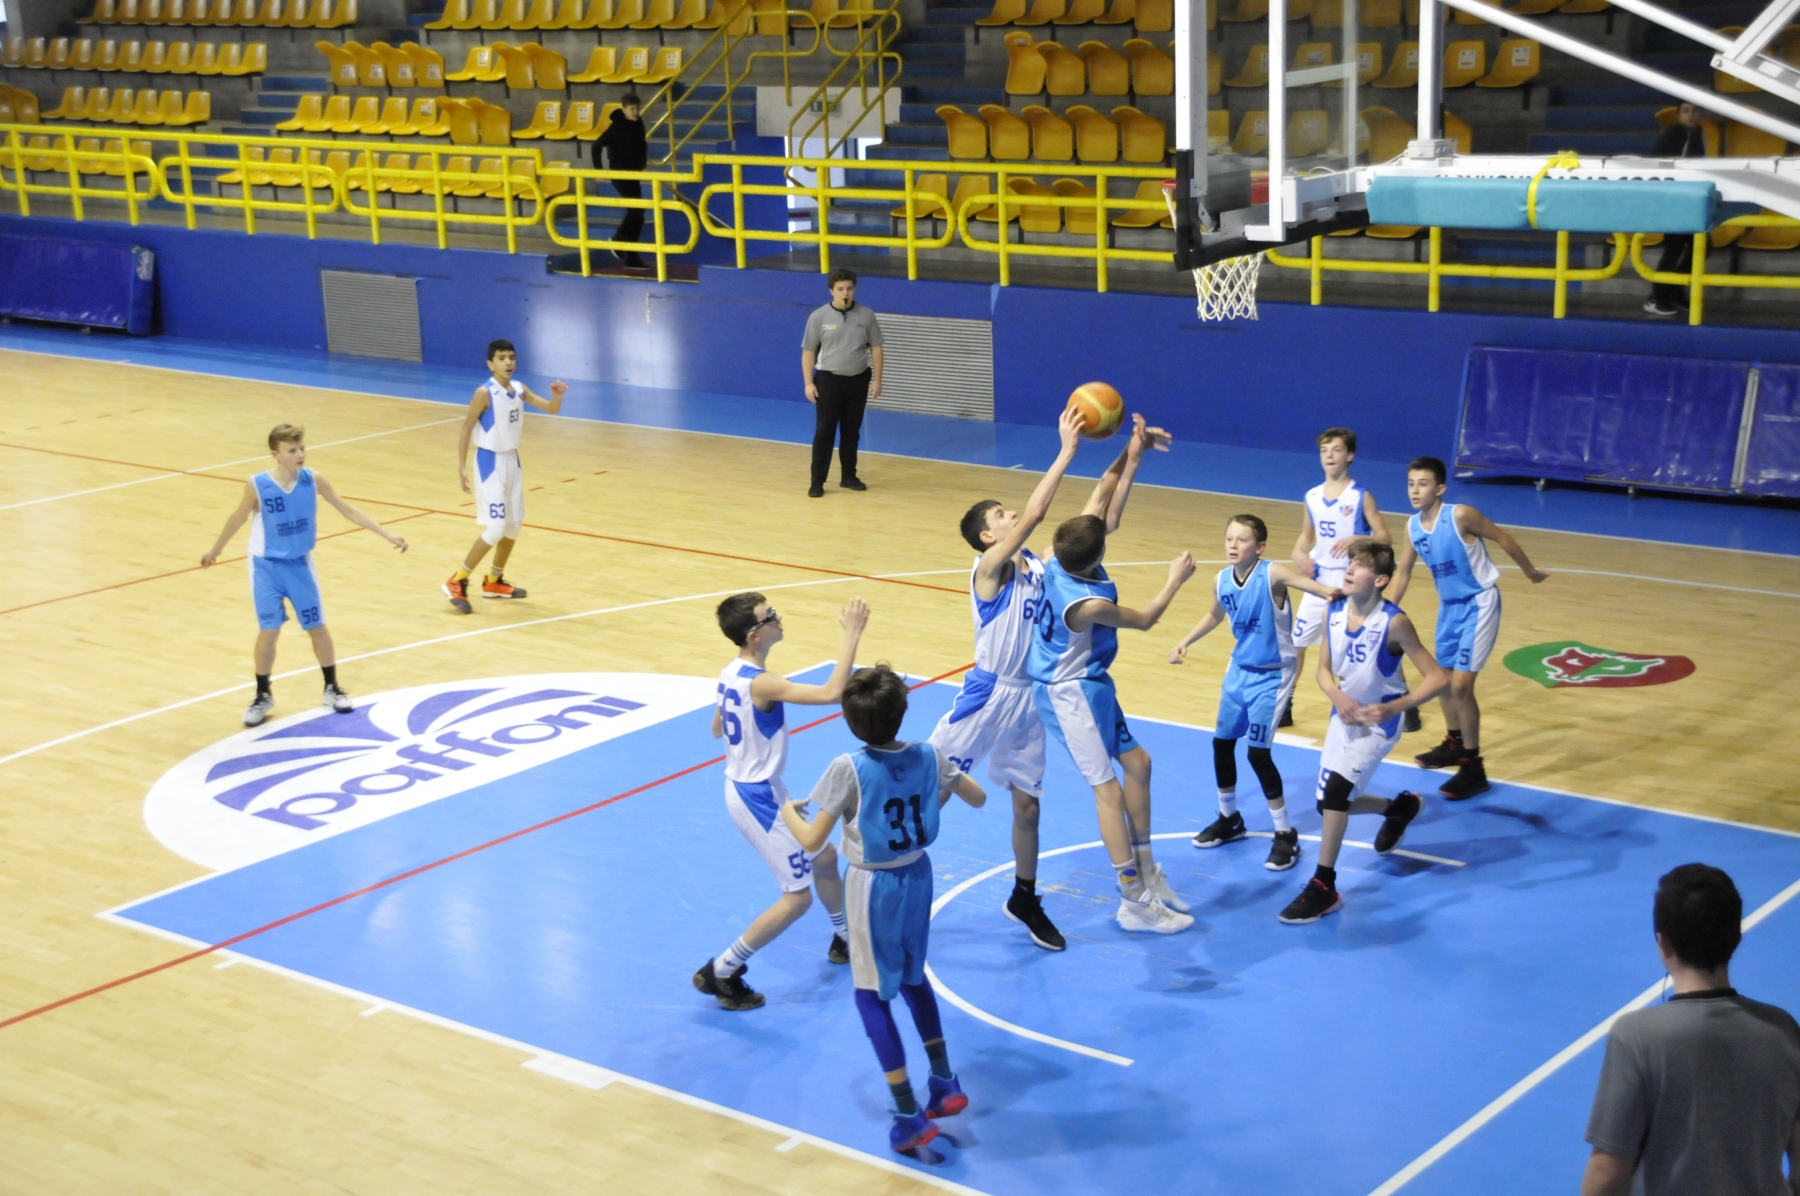 Virtus-College-U13-2020-01-25_045